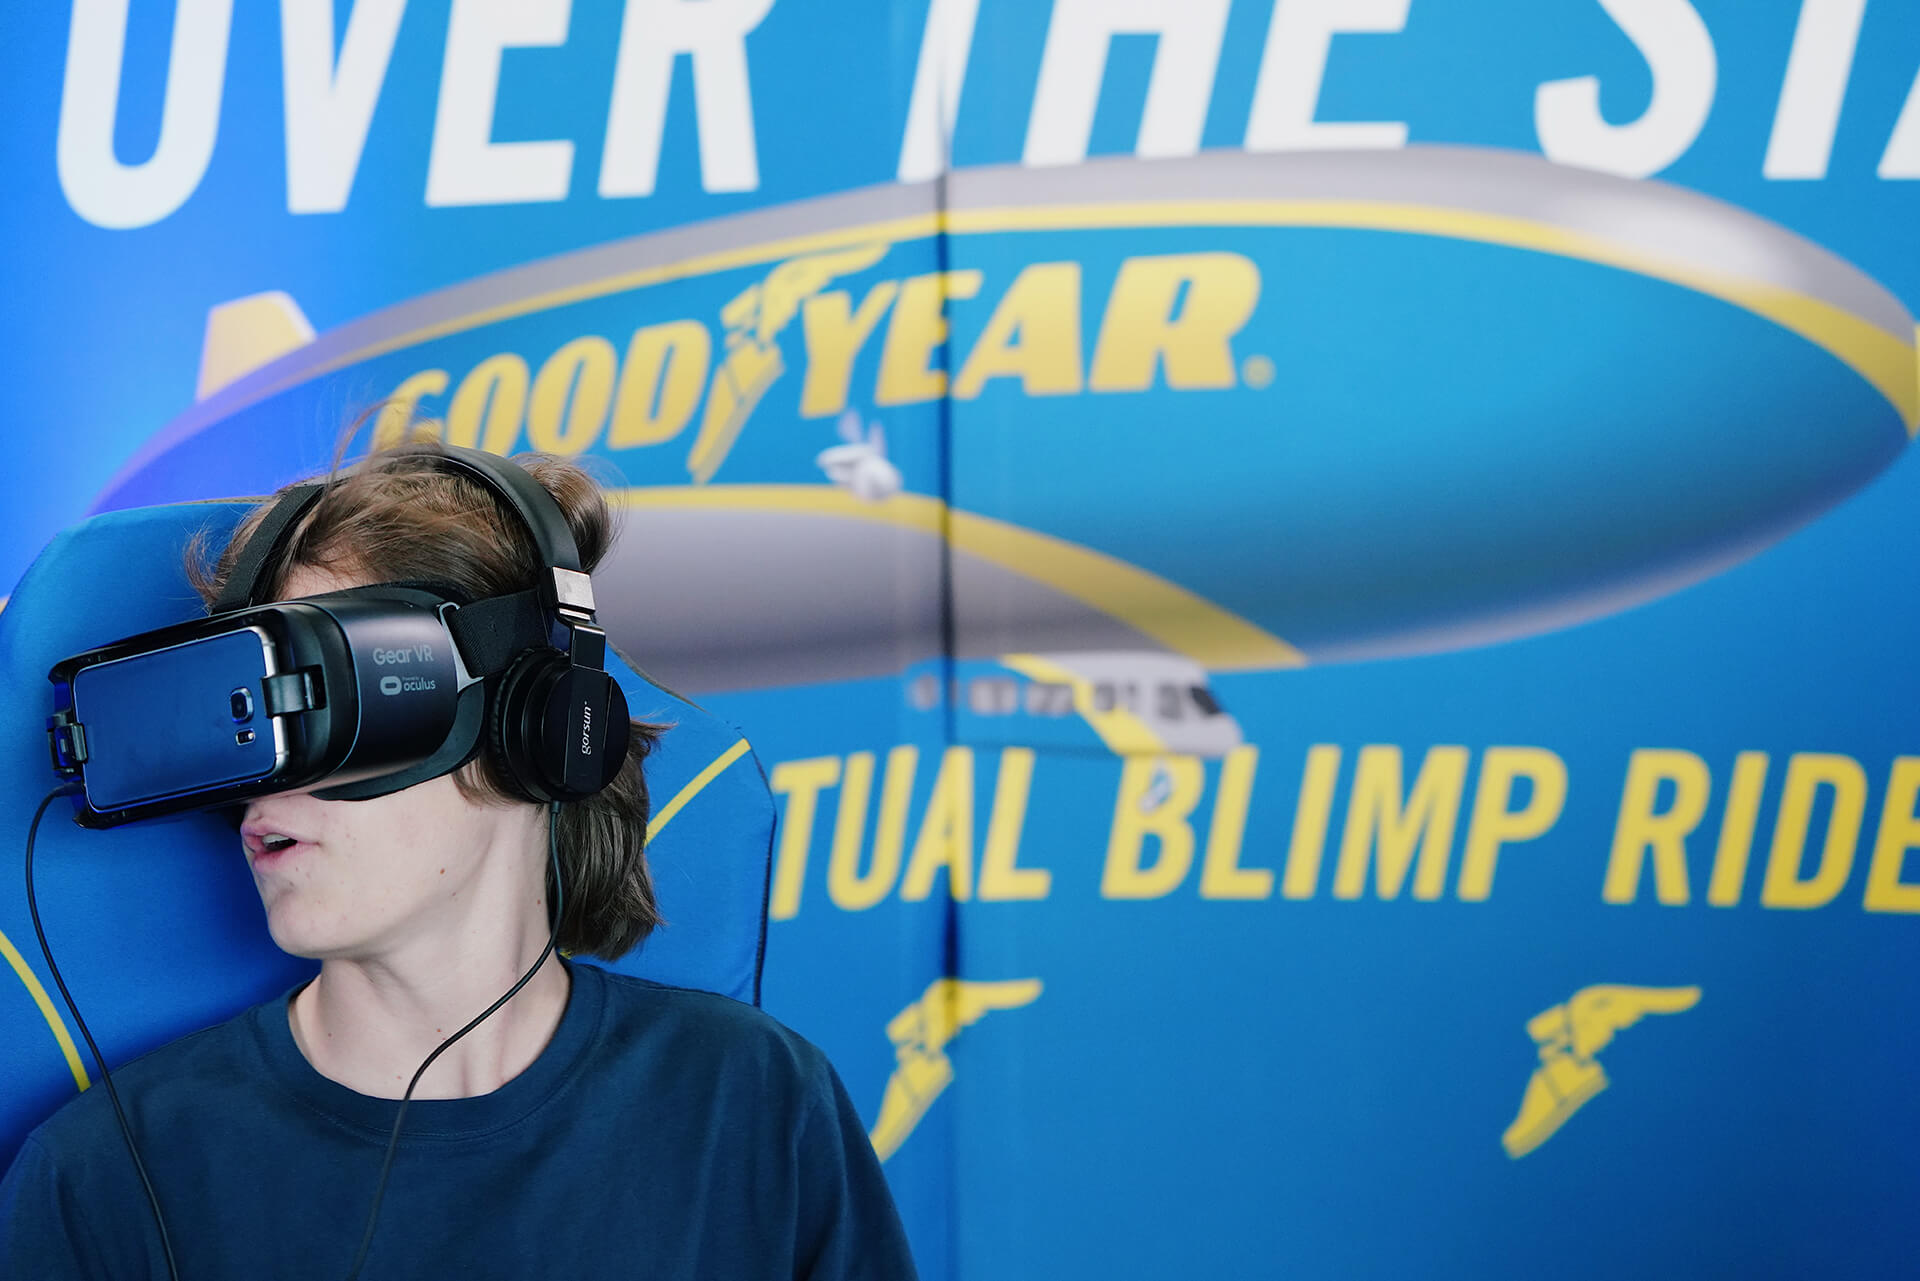 The Marketing Arm worked with Goodyear to help fans feel blimpworthy, creating a virtual simulation experience for activation attendees to ride over the stadium in the Goodyear Blimp.